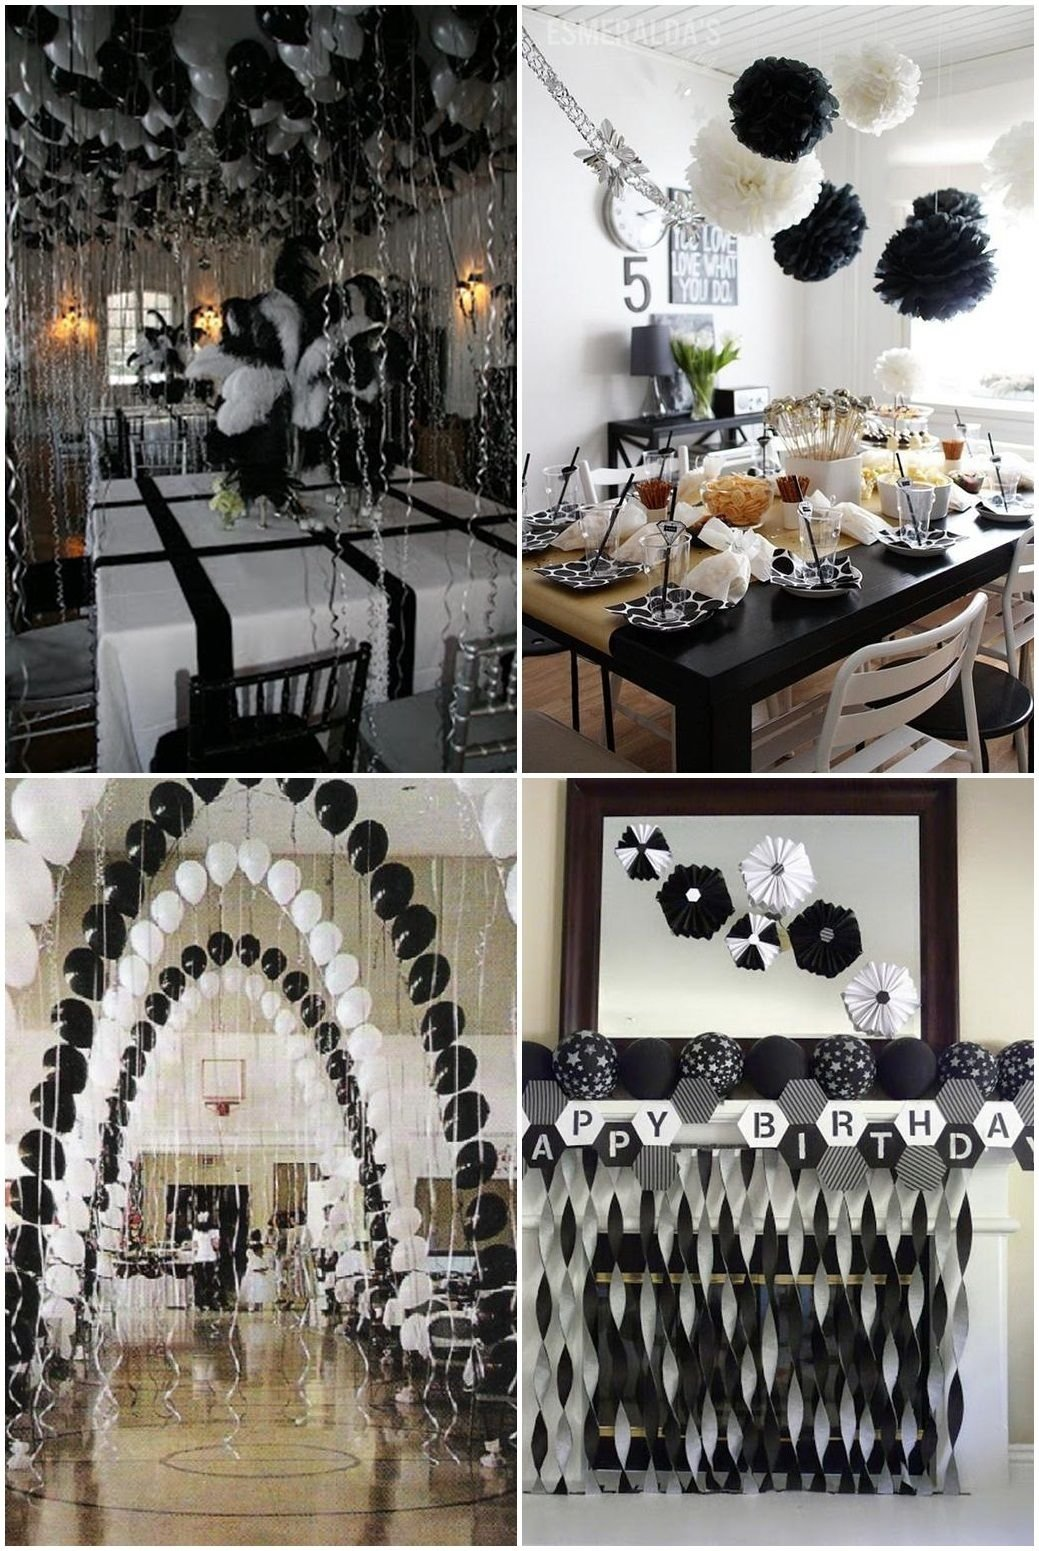 10 Stylish 25Th Birthday Party Ideas For Him black and white graduation party ideas father daughter dance decor 3 2021